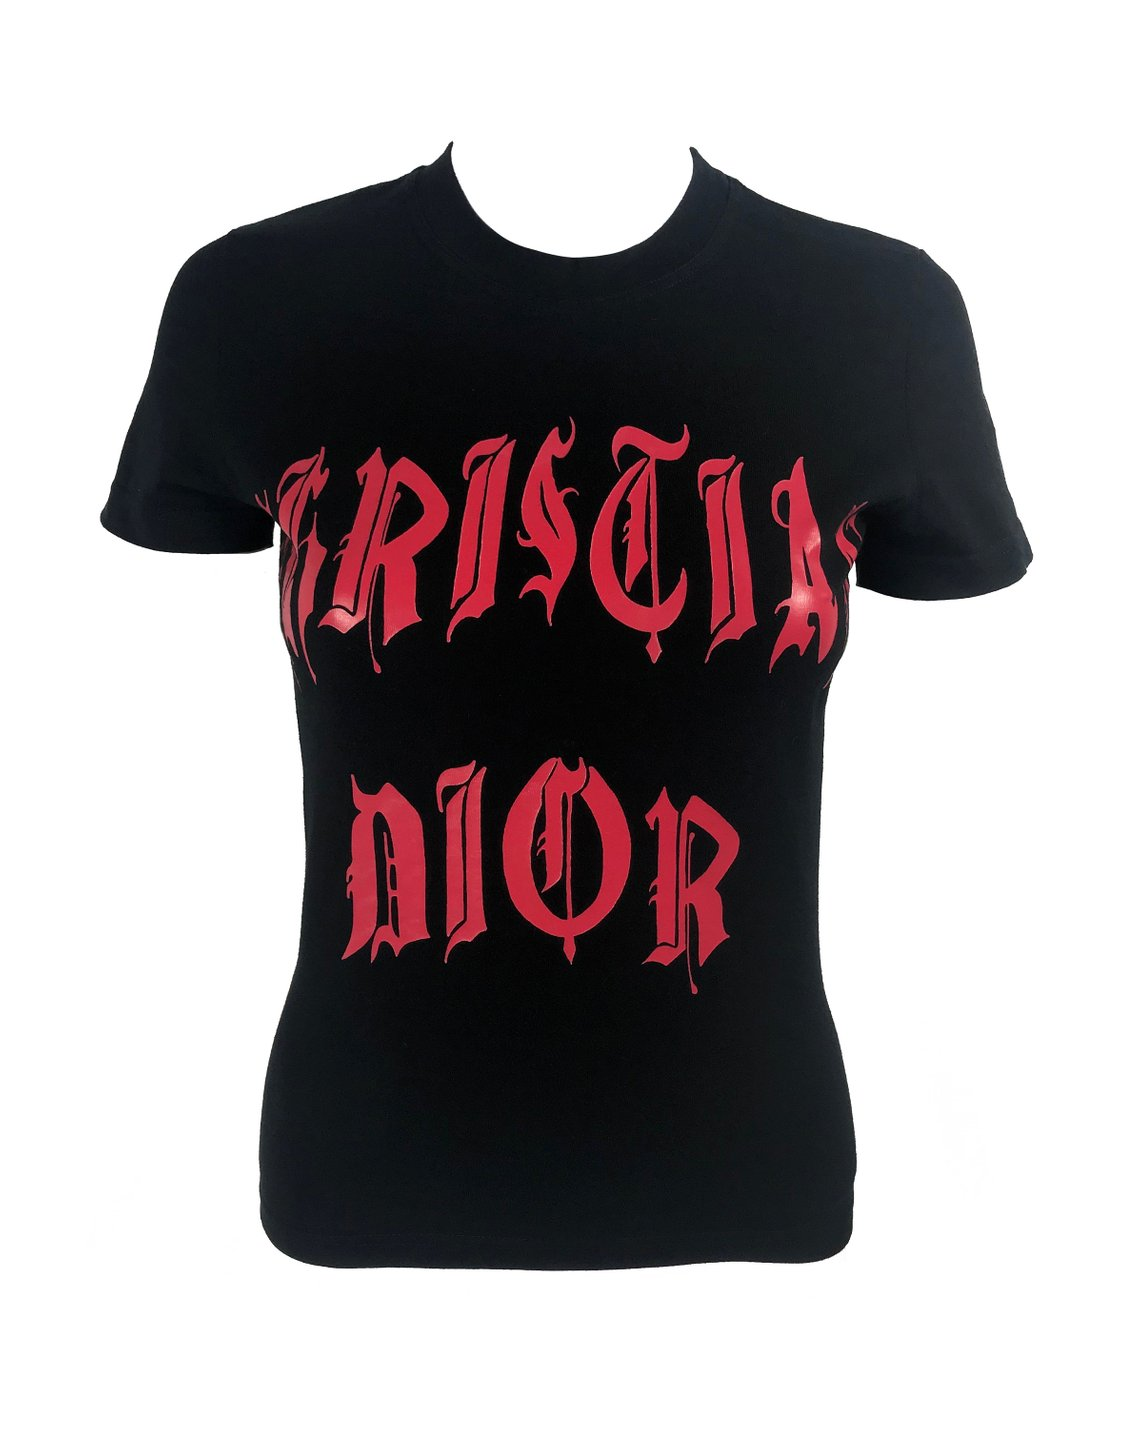 Fruit Vintage Christian Dior Gothic text Logo t-shirt. Features a classic t-shirt cut and graphic print with Christian Dior across the front and 1947 across the back.